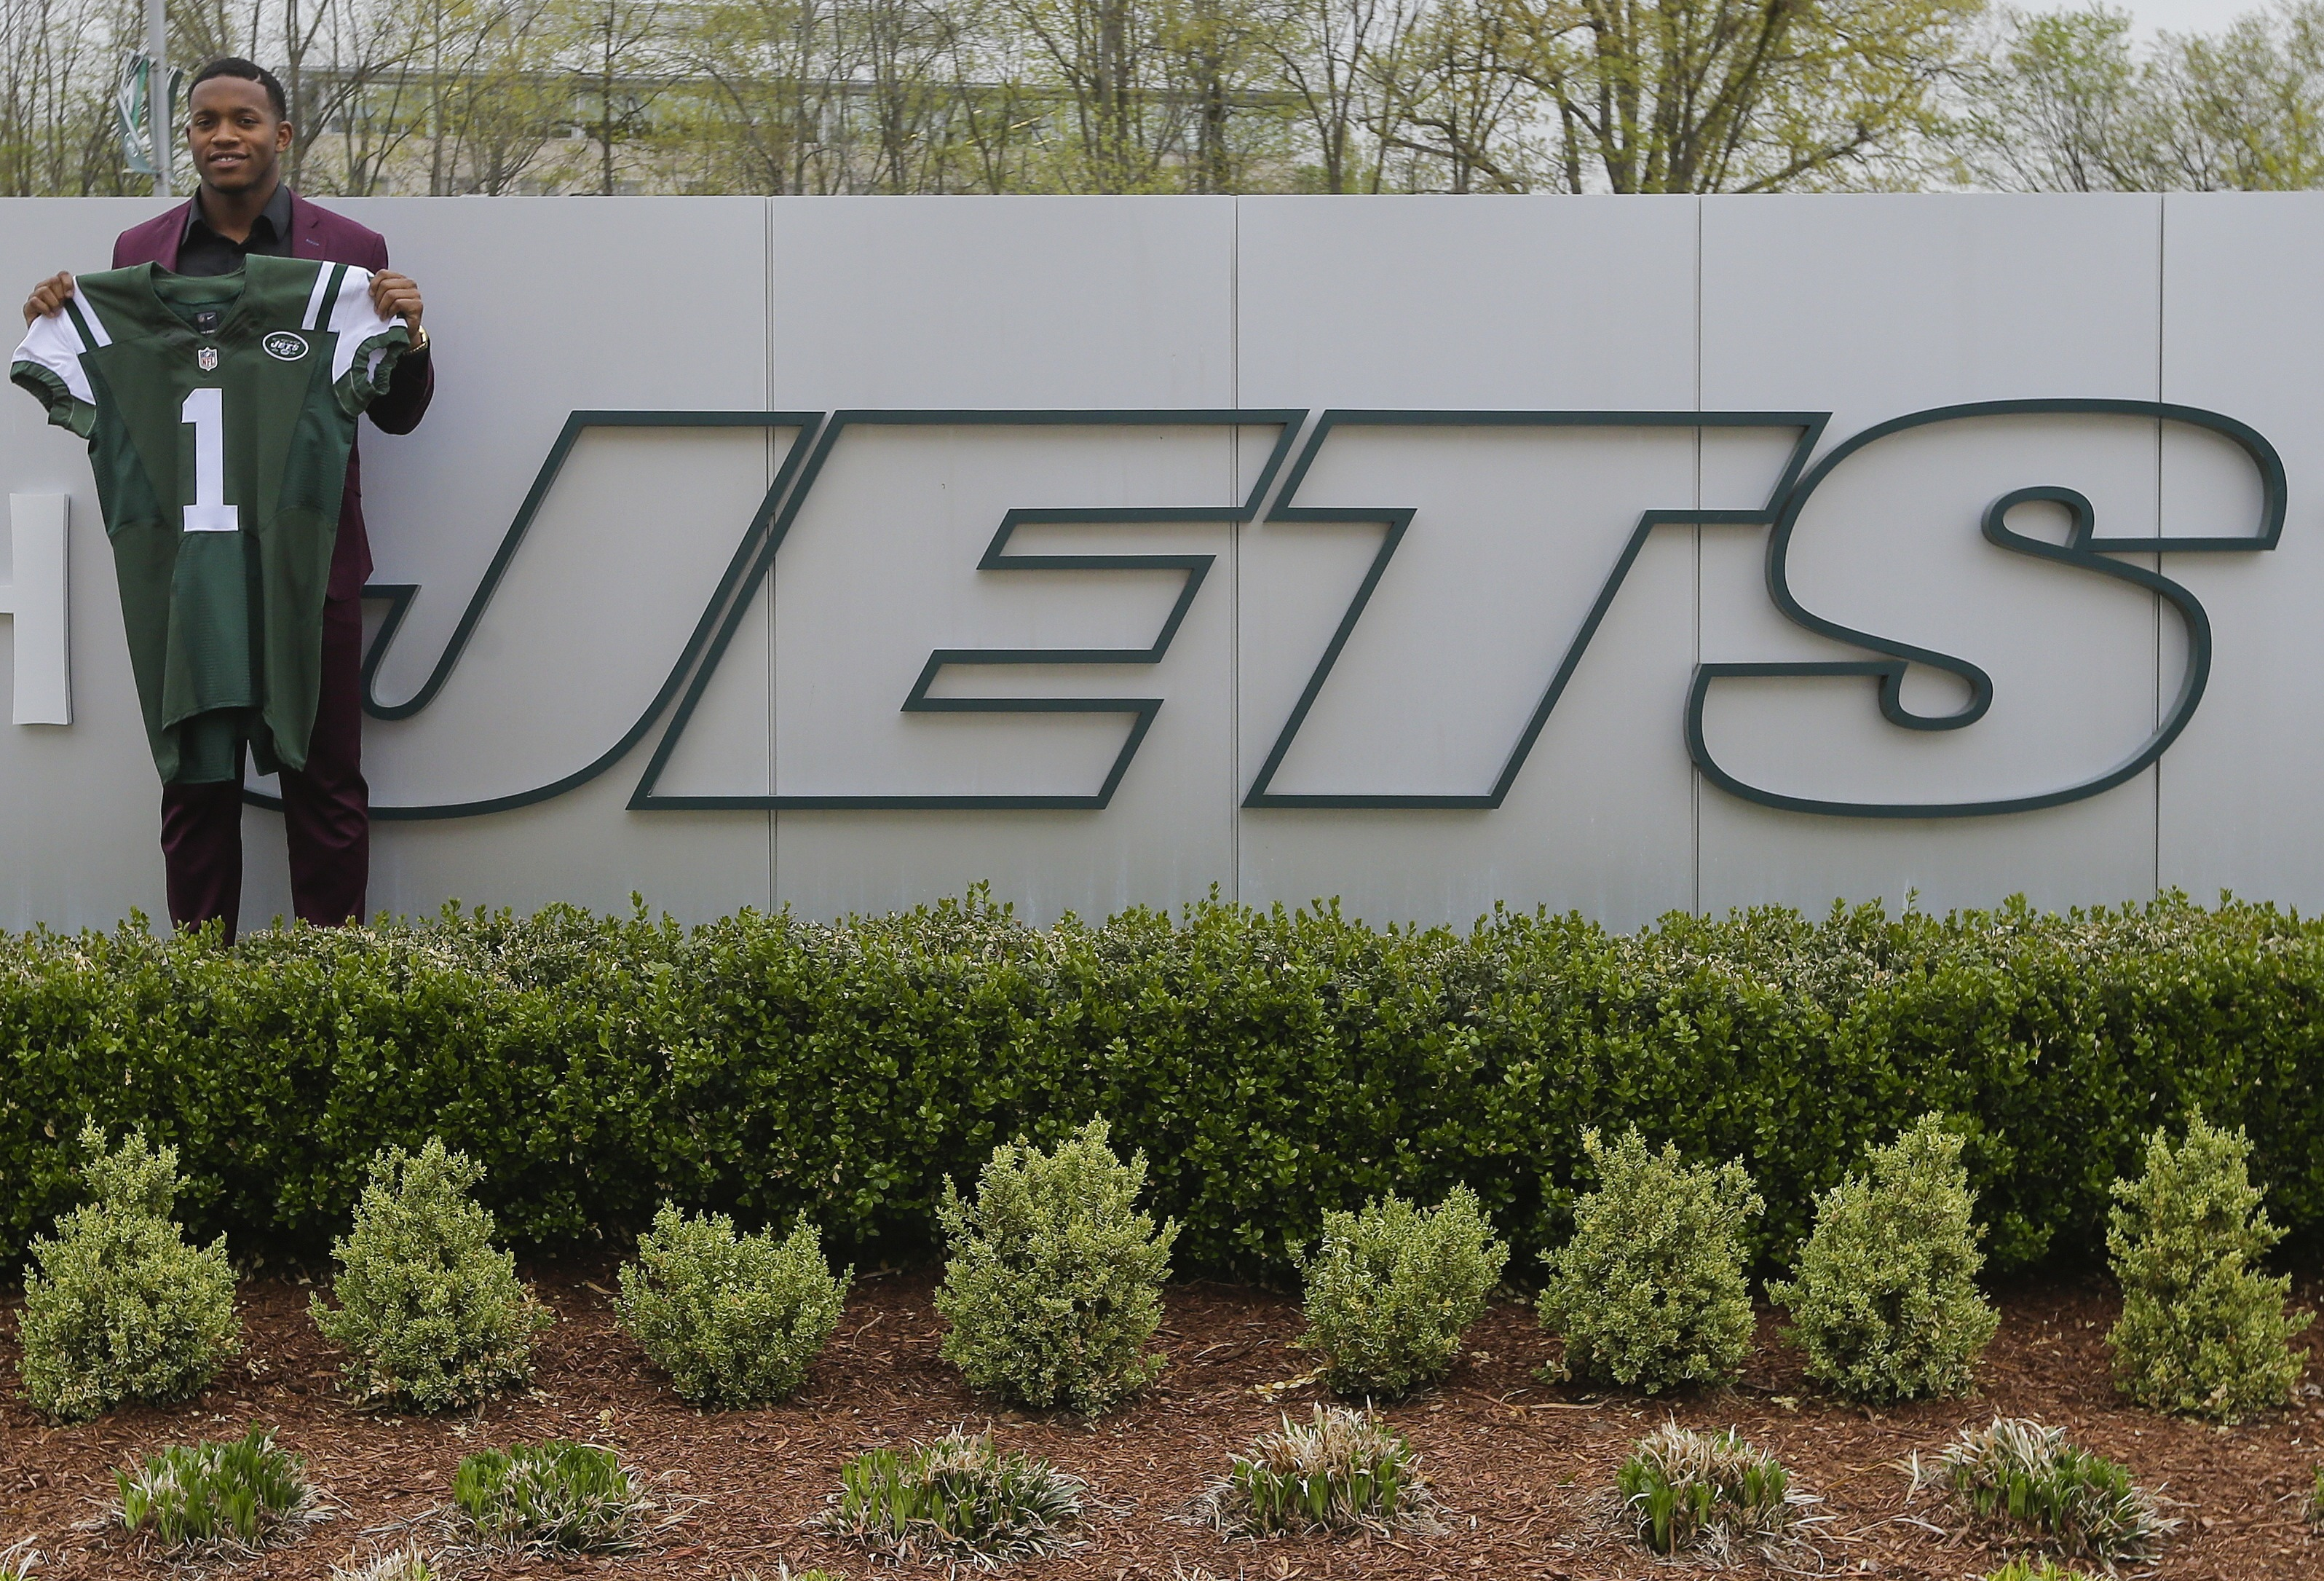 New York Jets first-round pick Darron Lee, of Ohio State, poses for photographs Friday, April 29, 2016, in Florham Park, N.J. (AP Photo/Frank Franklin II)